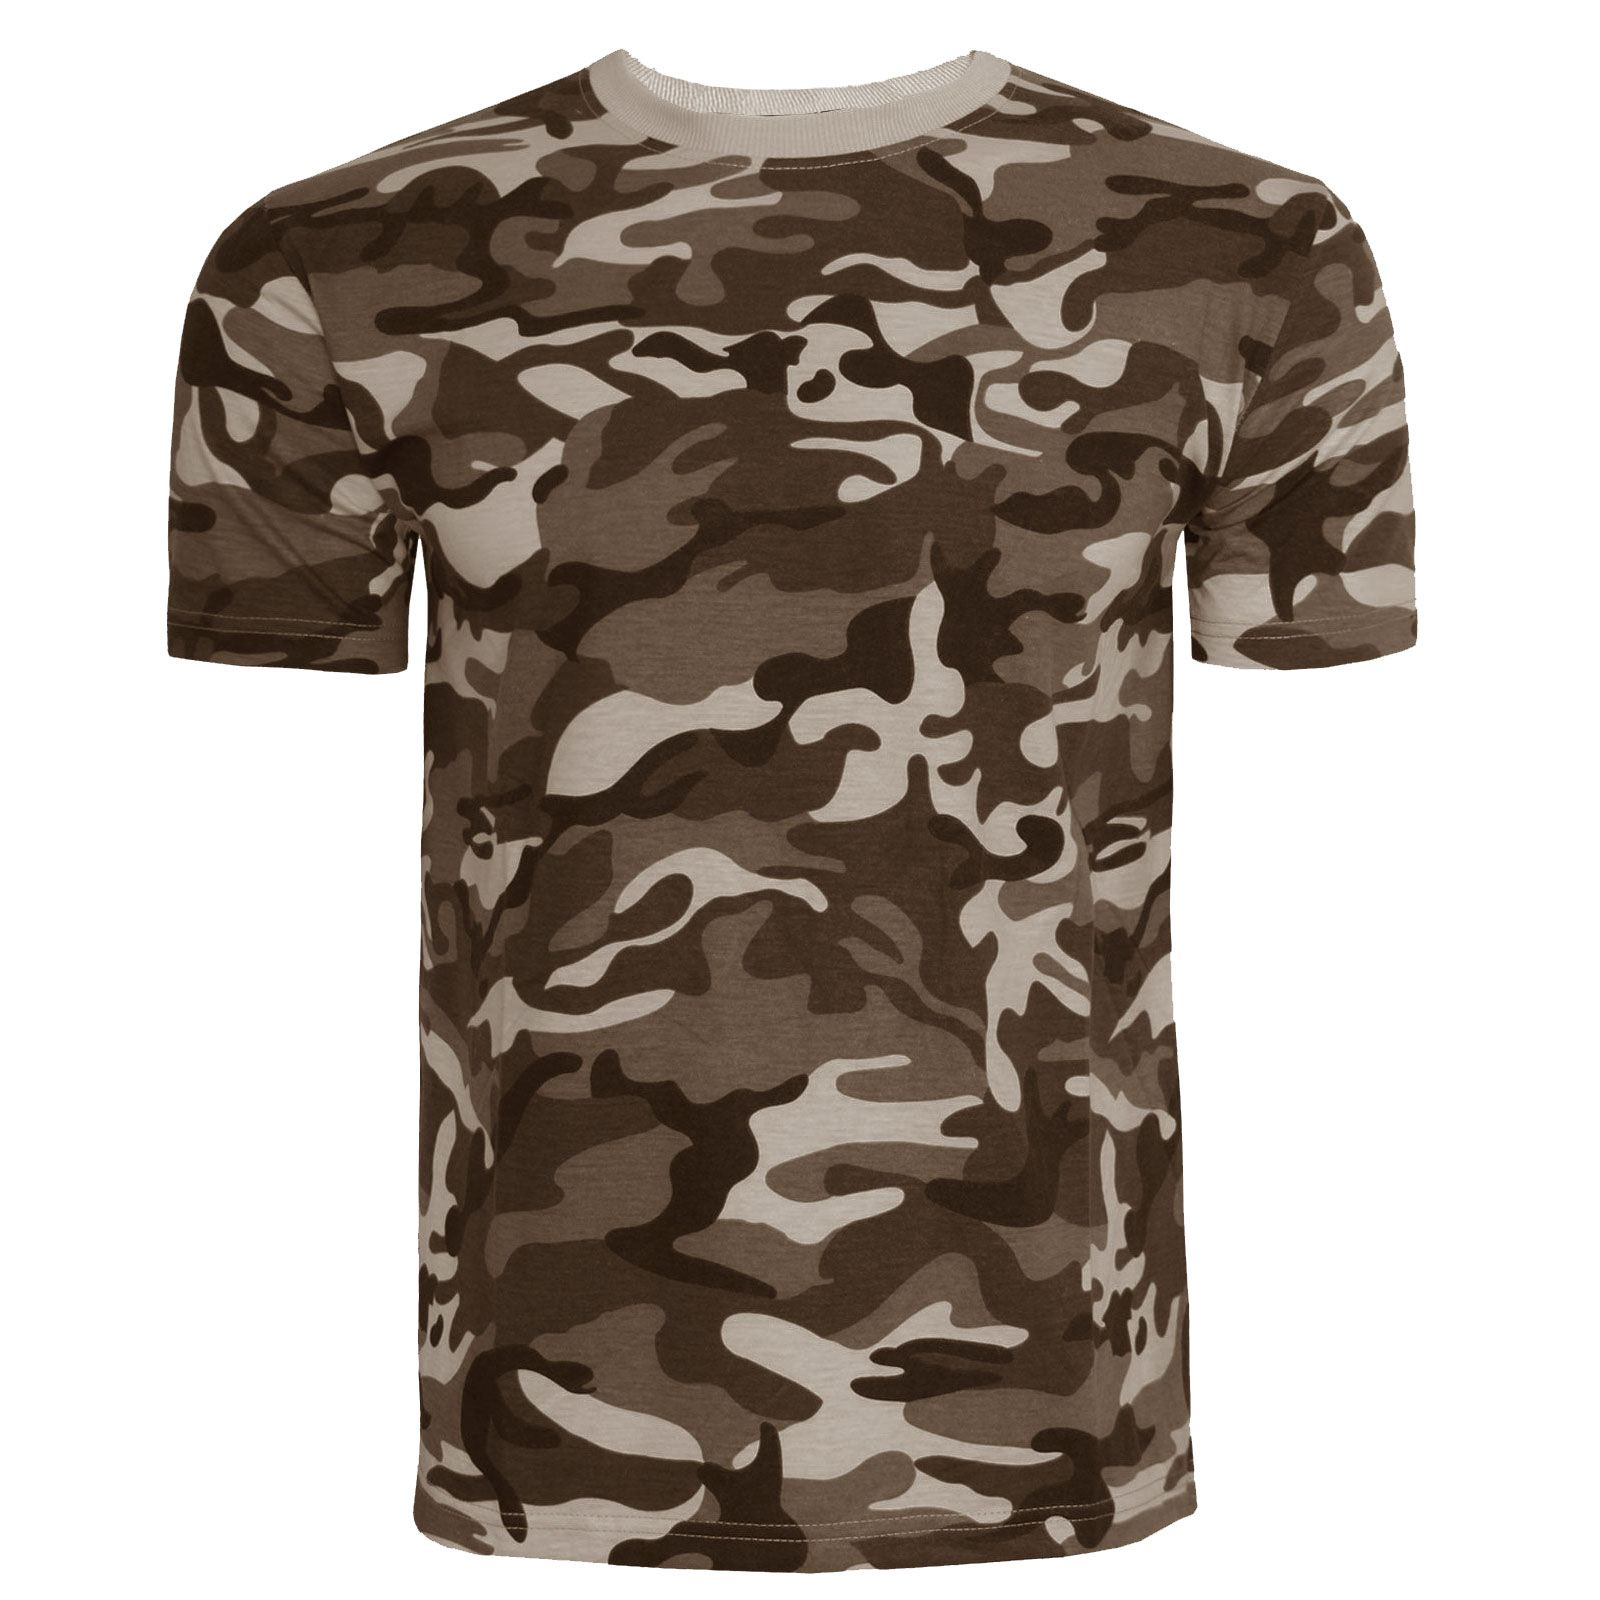 Mens camouflage t shirt top vest camo military hunting for Camo fishing shirt